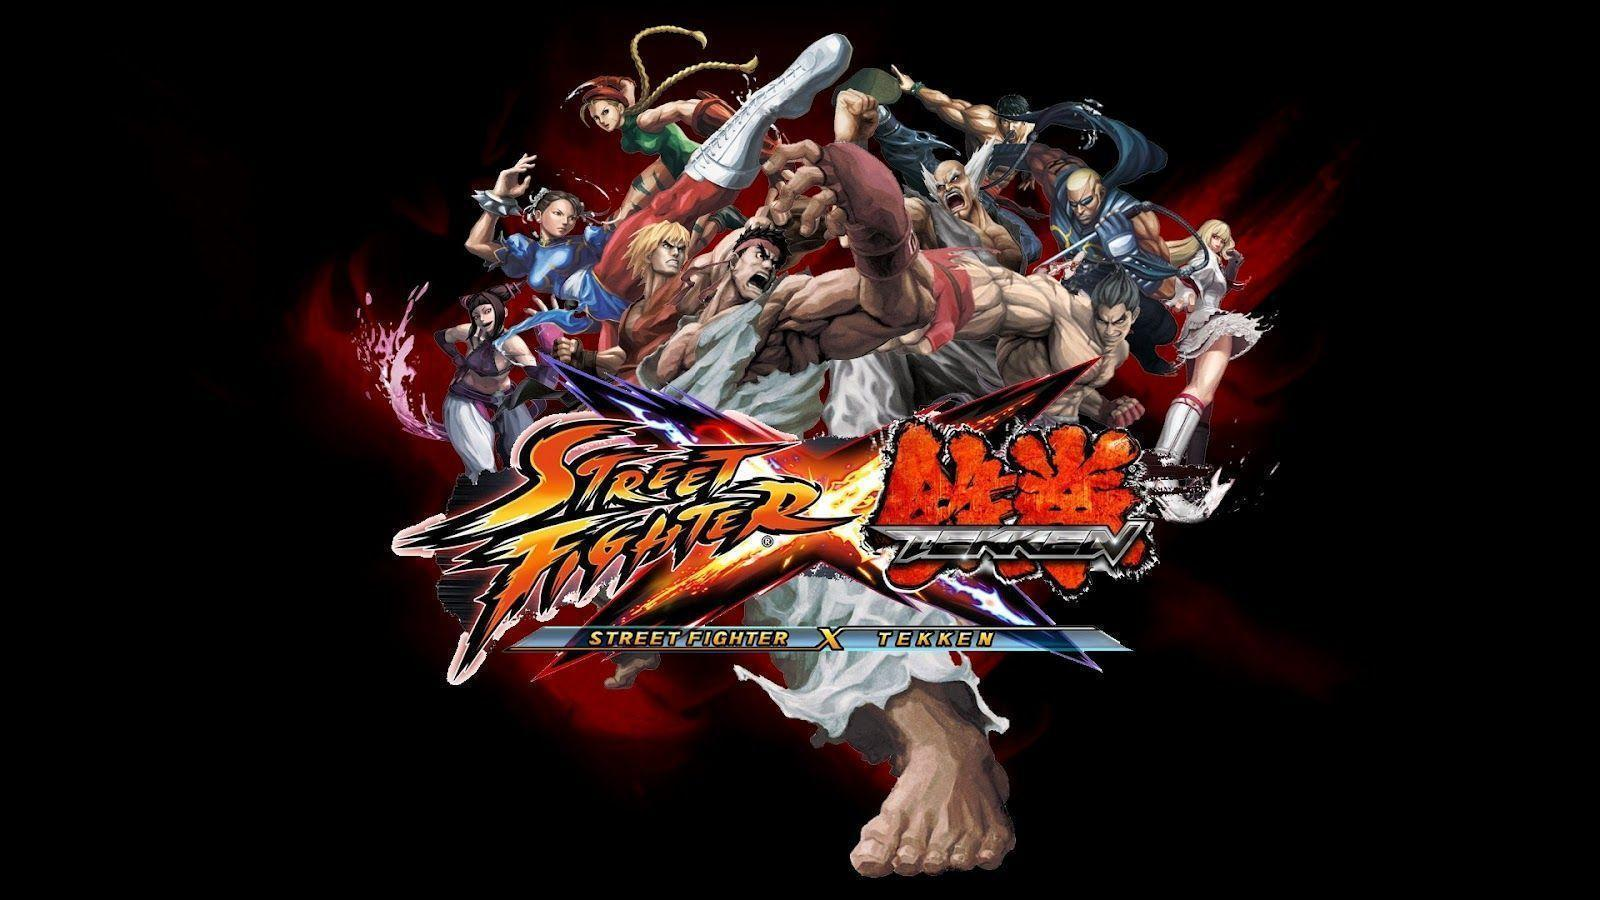 Street fighter wallpapers hd wallpaper cave - Street fighter 2 wallpaper hd ...